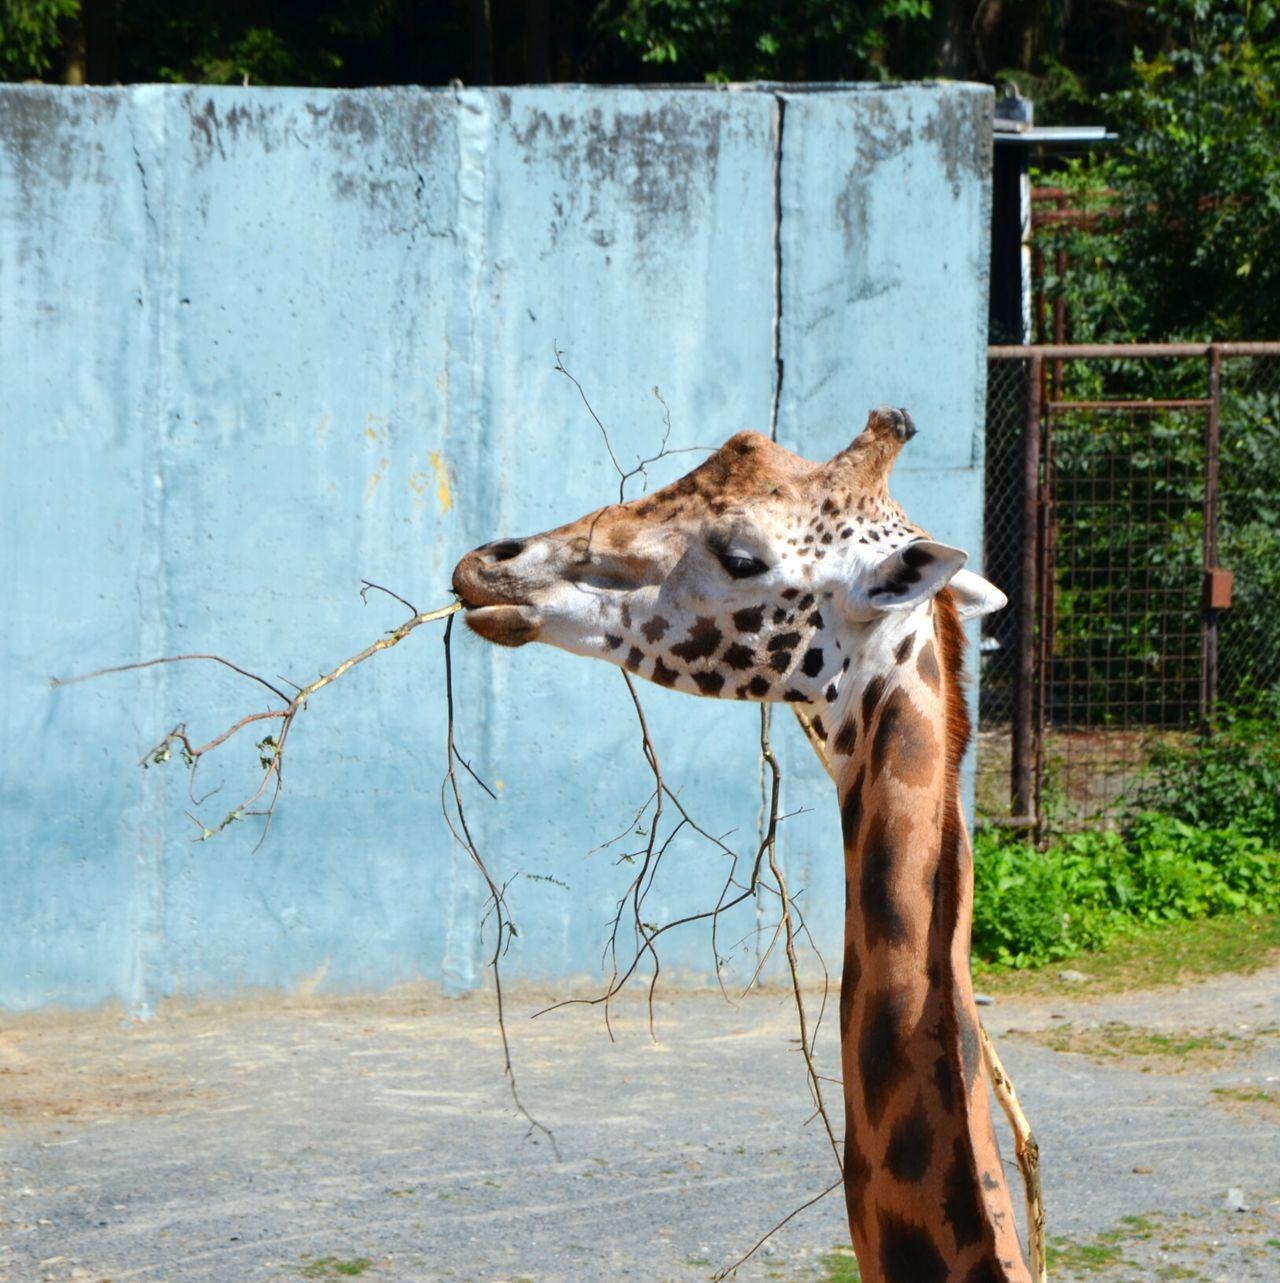 Giraffe Eating Branch Zoo Animal Capture The Moment Nature Long Neck  Neck Animals Animal_collection Animal Photography